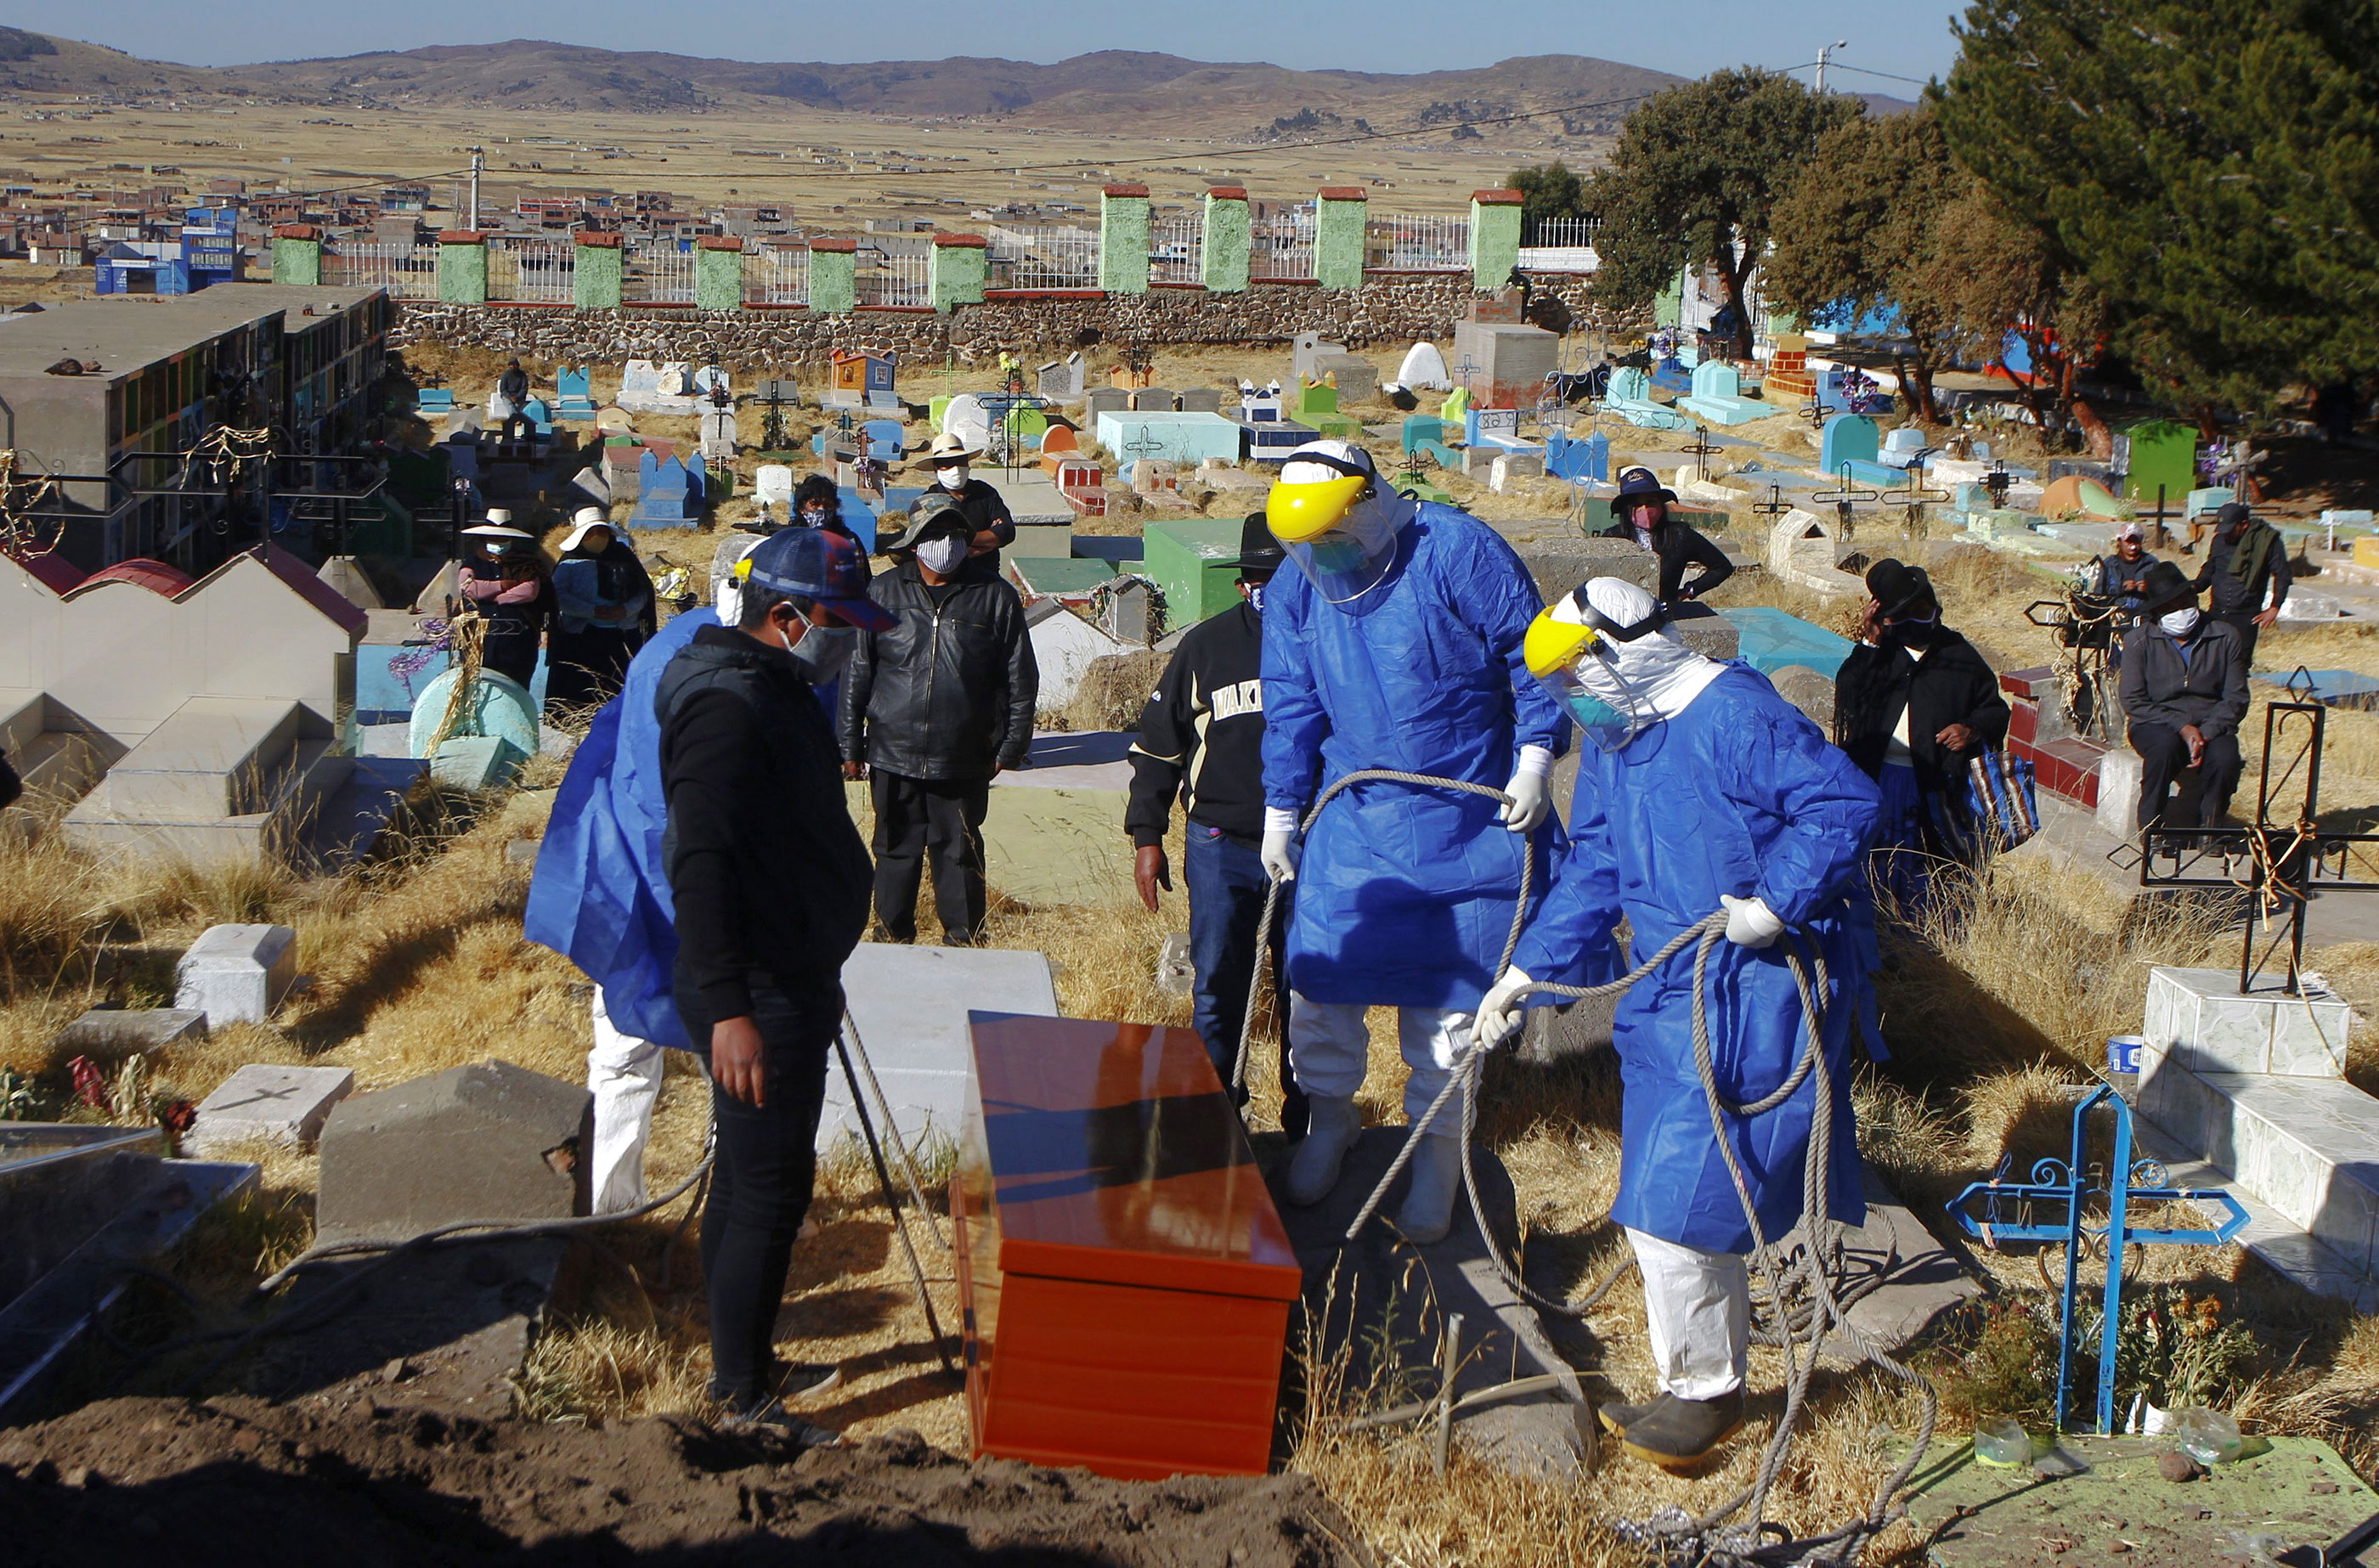 Workers in protective suits prepare to lower a coffin into the ground during the burial of a Covid-19 victim in the remote highland village of Acora, Peru, on August 9, 2020.